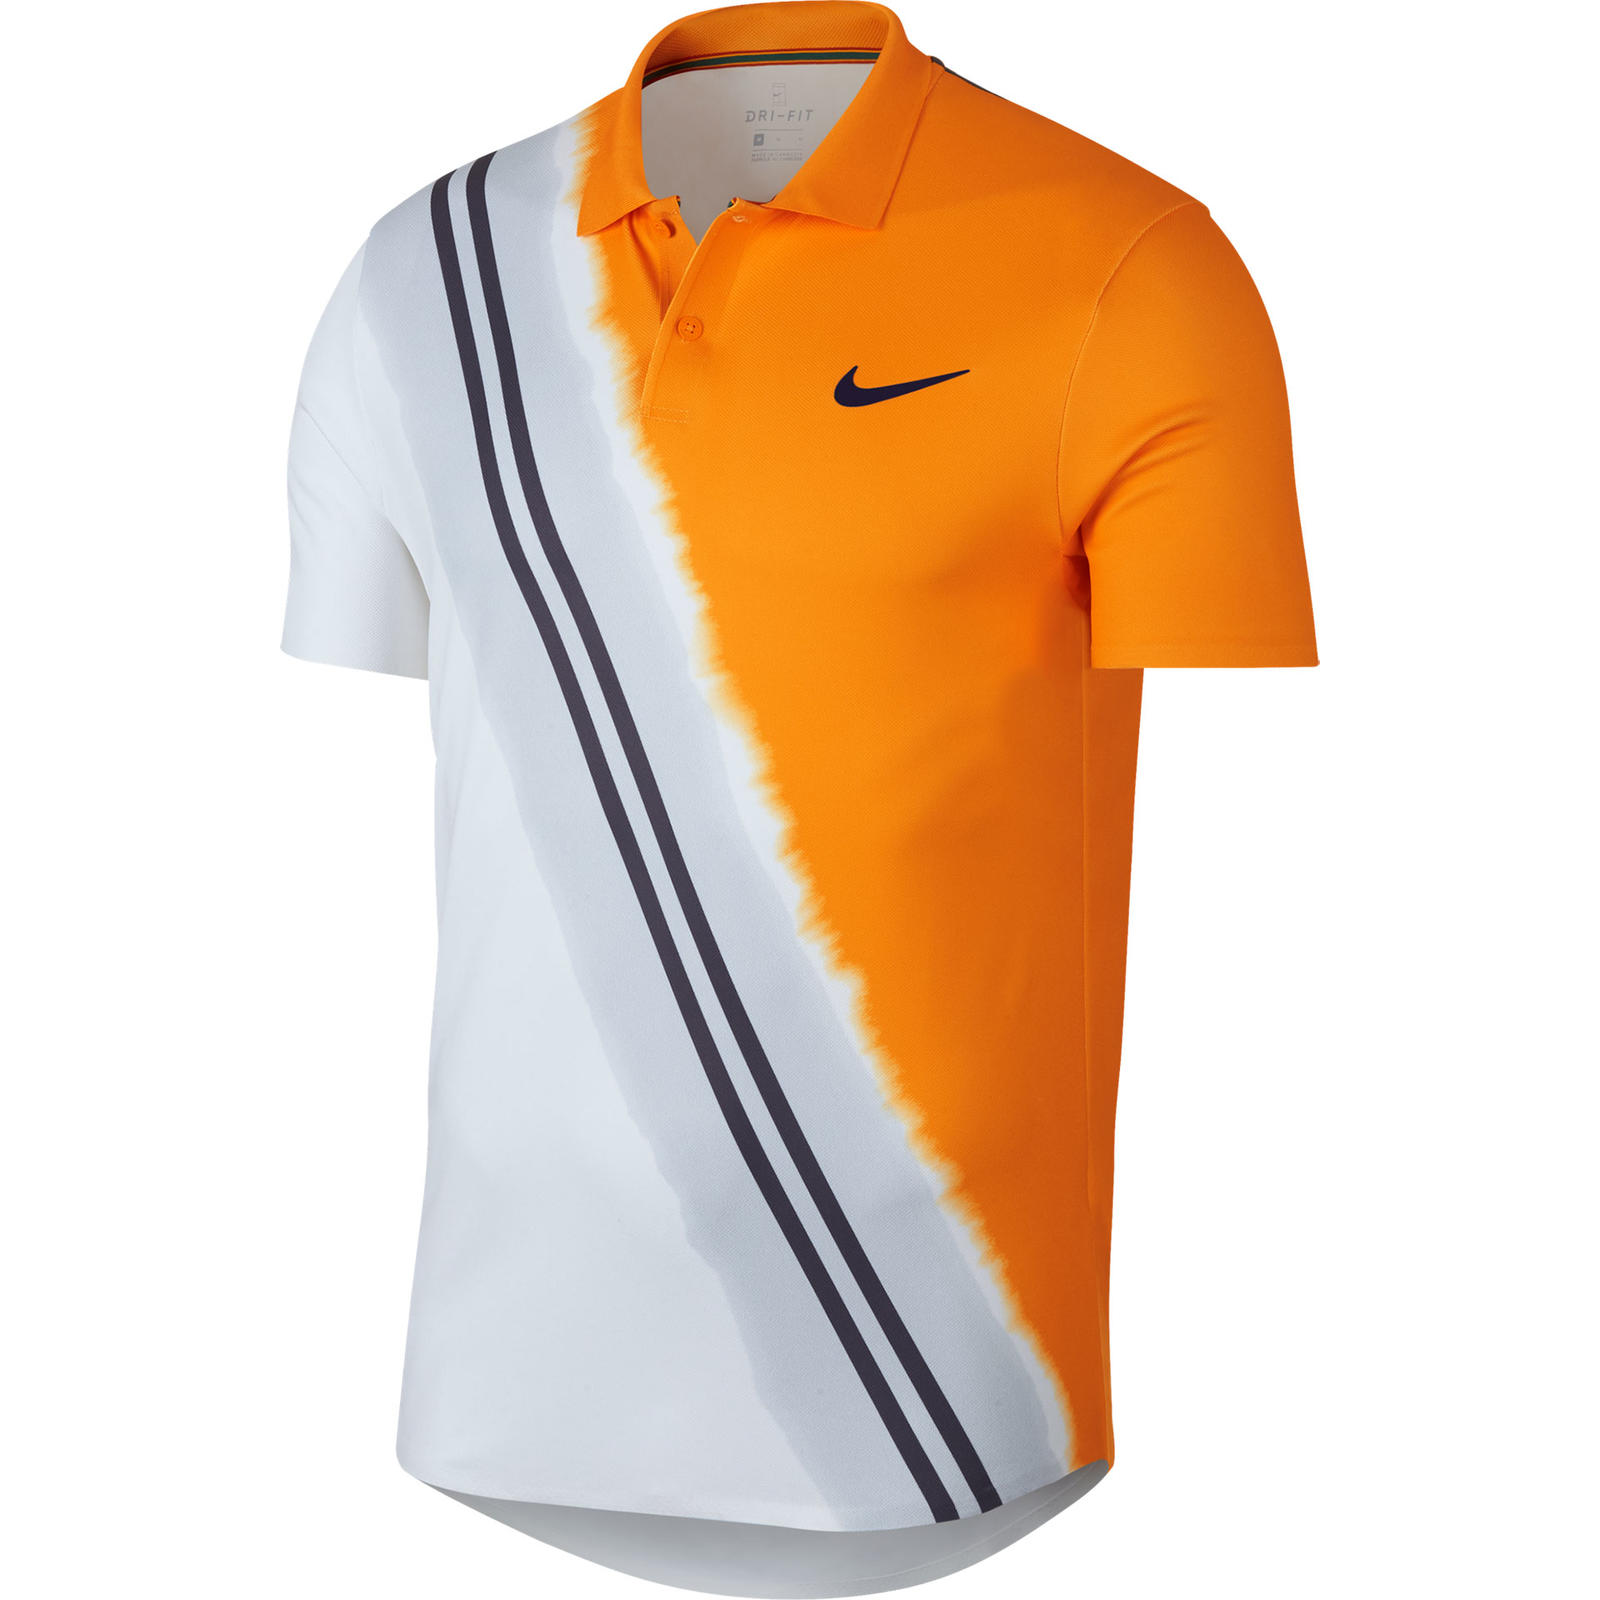 2018usopencollection polo 934220 831 phsfh001 2000 square 1600